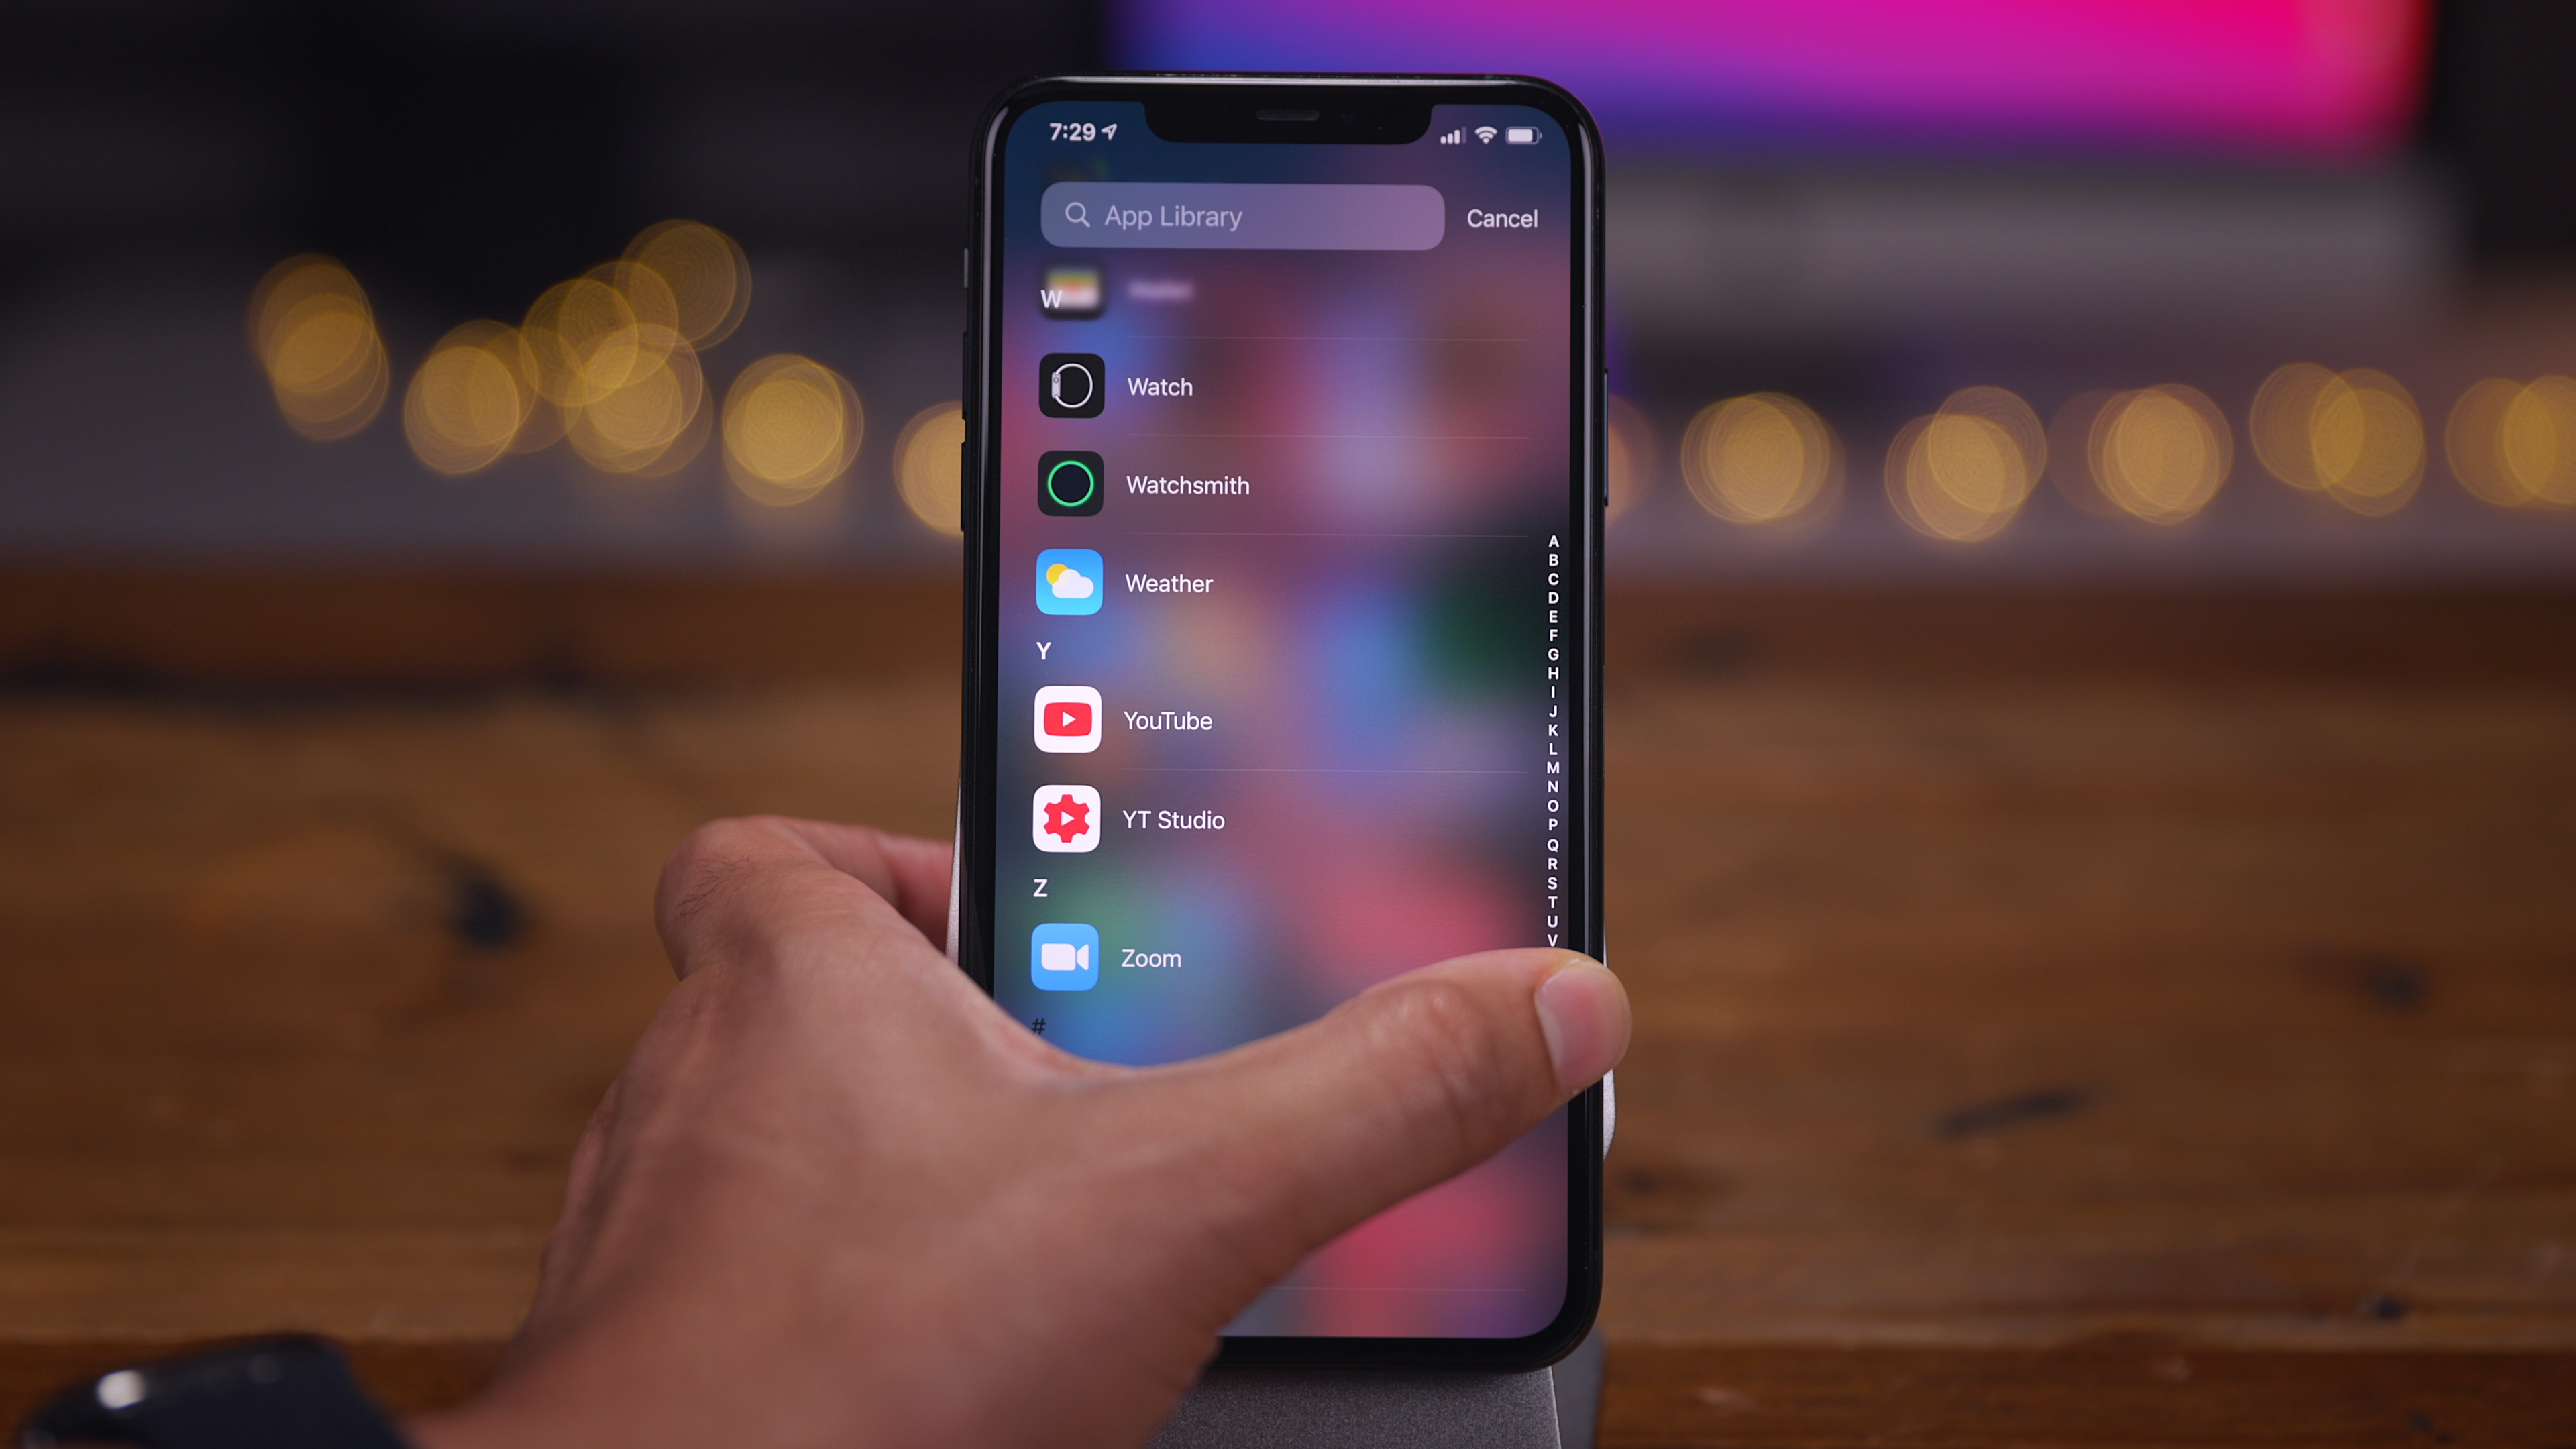 Ios 14 home screen tips and tricks how to show all apps alphabetically